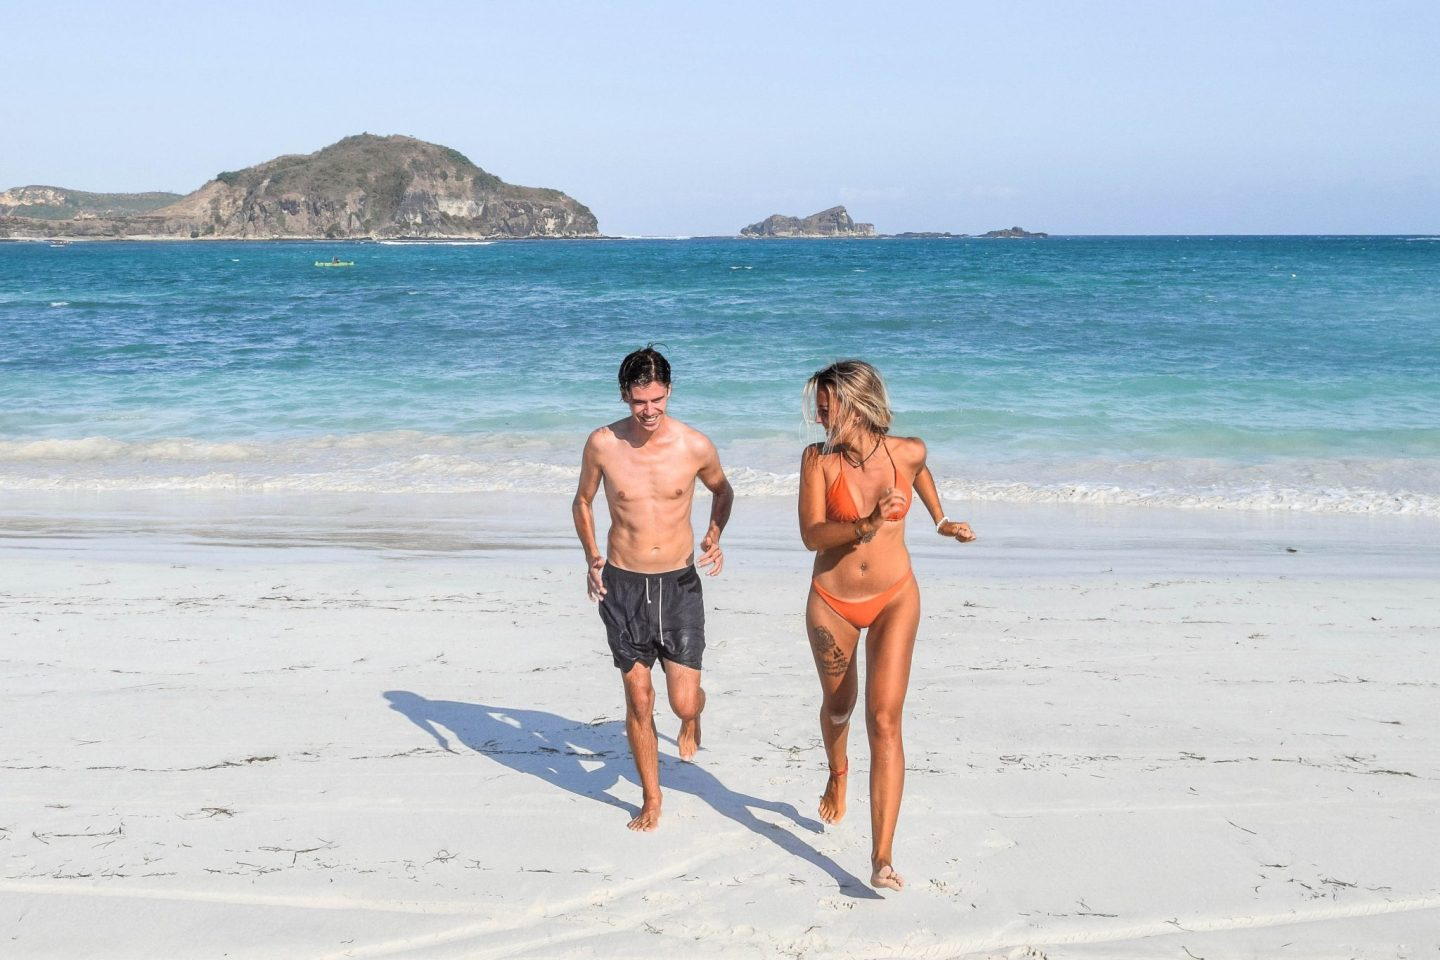 Wanderers & Warriors - Charlie & Lauren UK Travel Couple - Tanjung Aan Beach - Tanjung Aan Lombok - Pantai Tanjung Aan